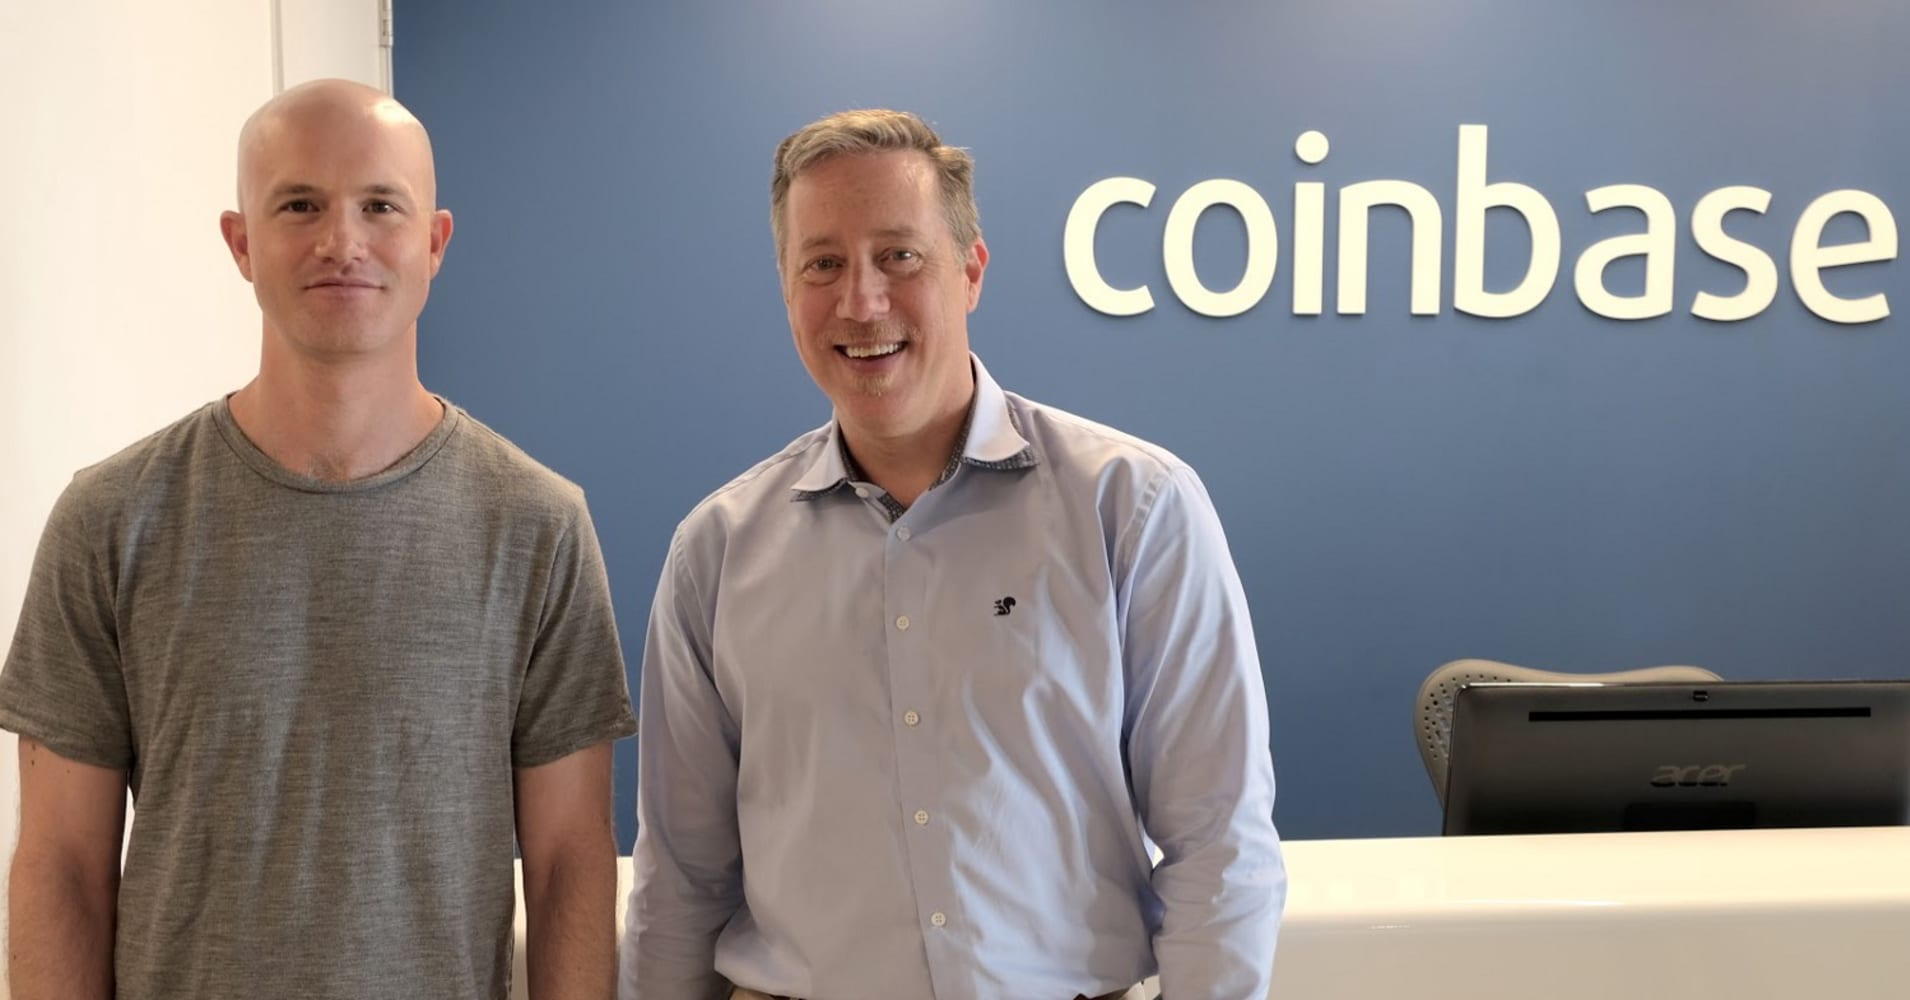 Left, Coinbase co-founder and CEO Brian Armstrong with the company's new VP of engineering Tim Wagner